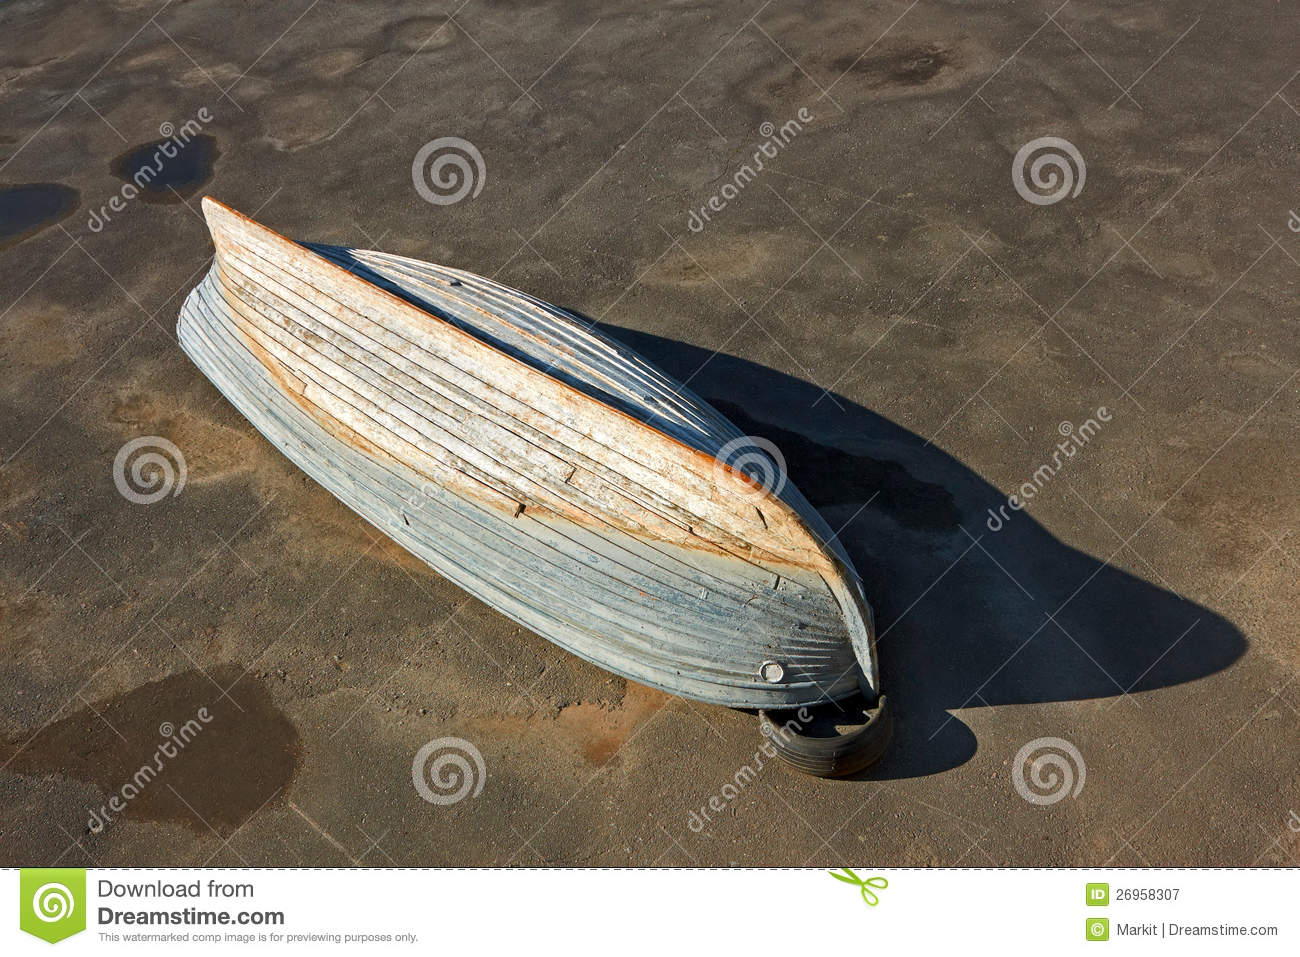 Wooden Boat Inverted Bottom Up Royalty Free Stock Photography - Image: 26958307